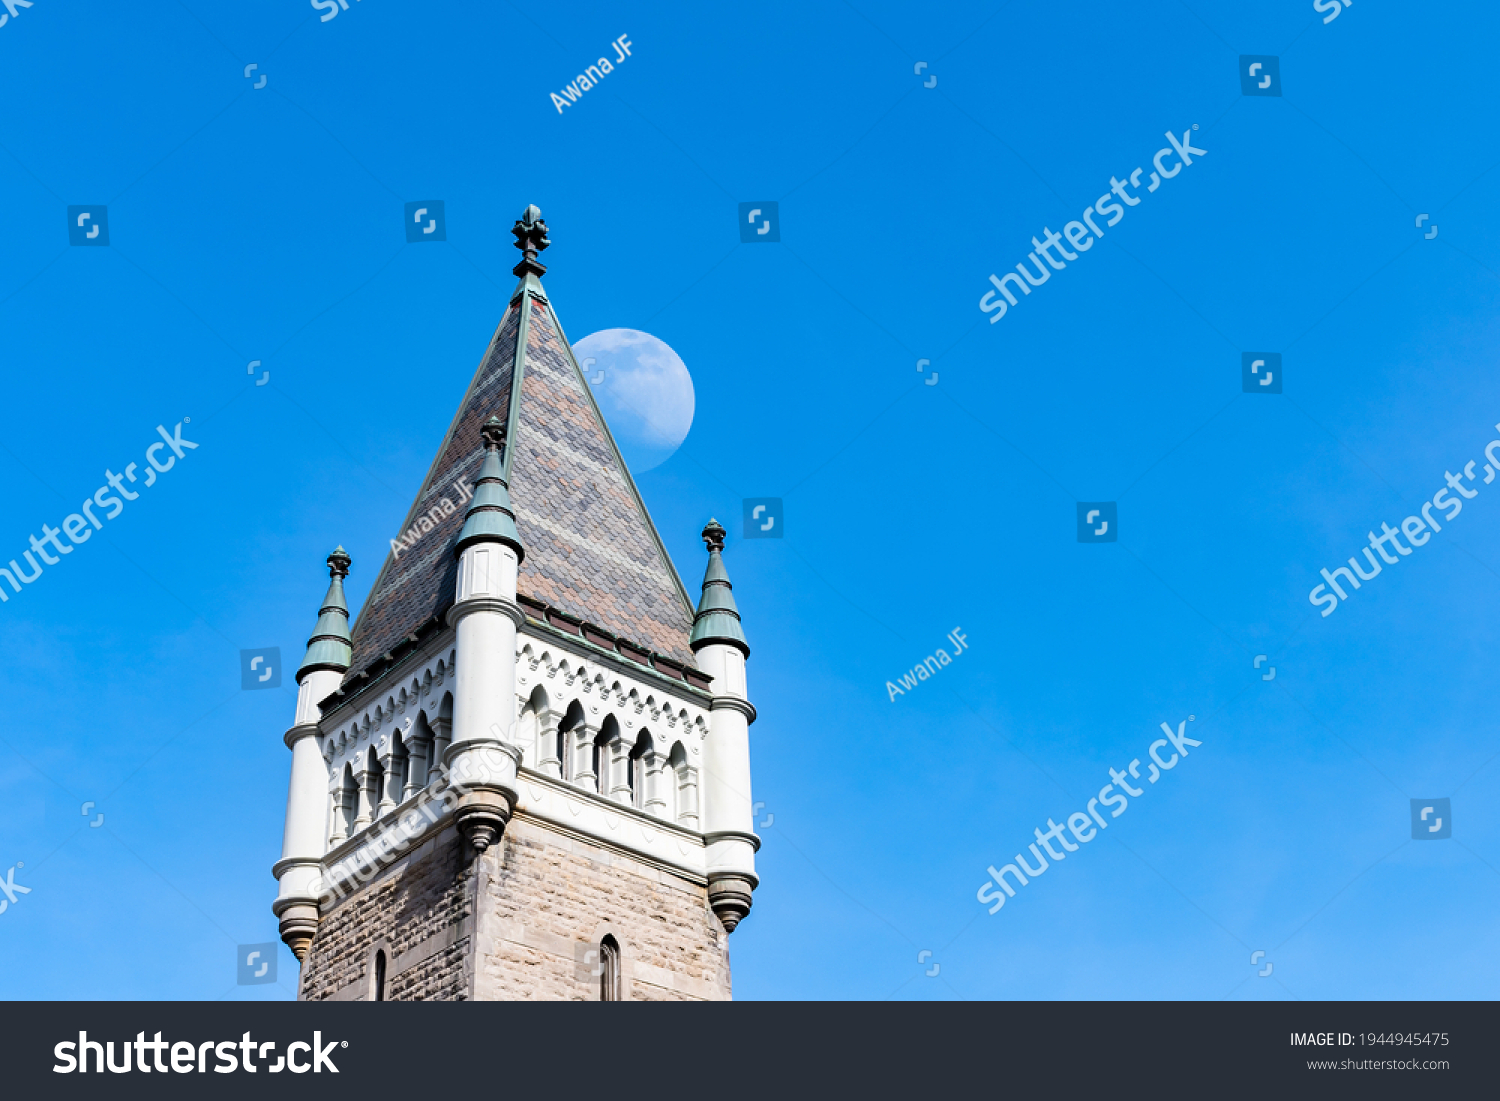 stock-photo-montreal-canada-march-tower-